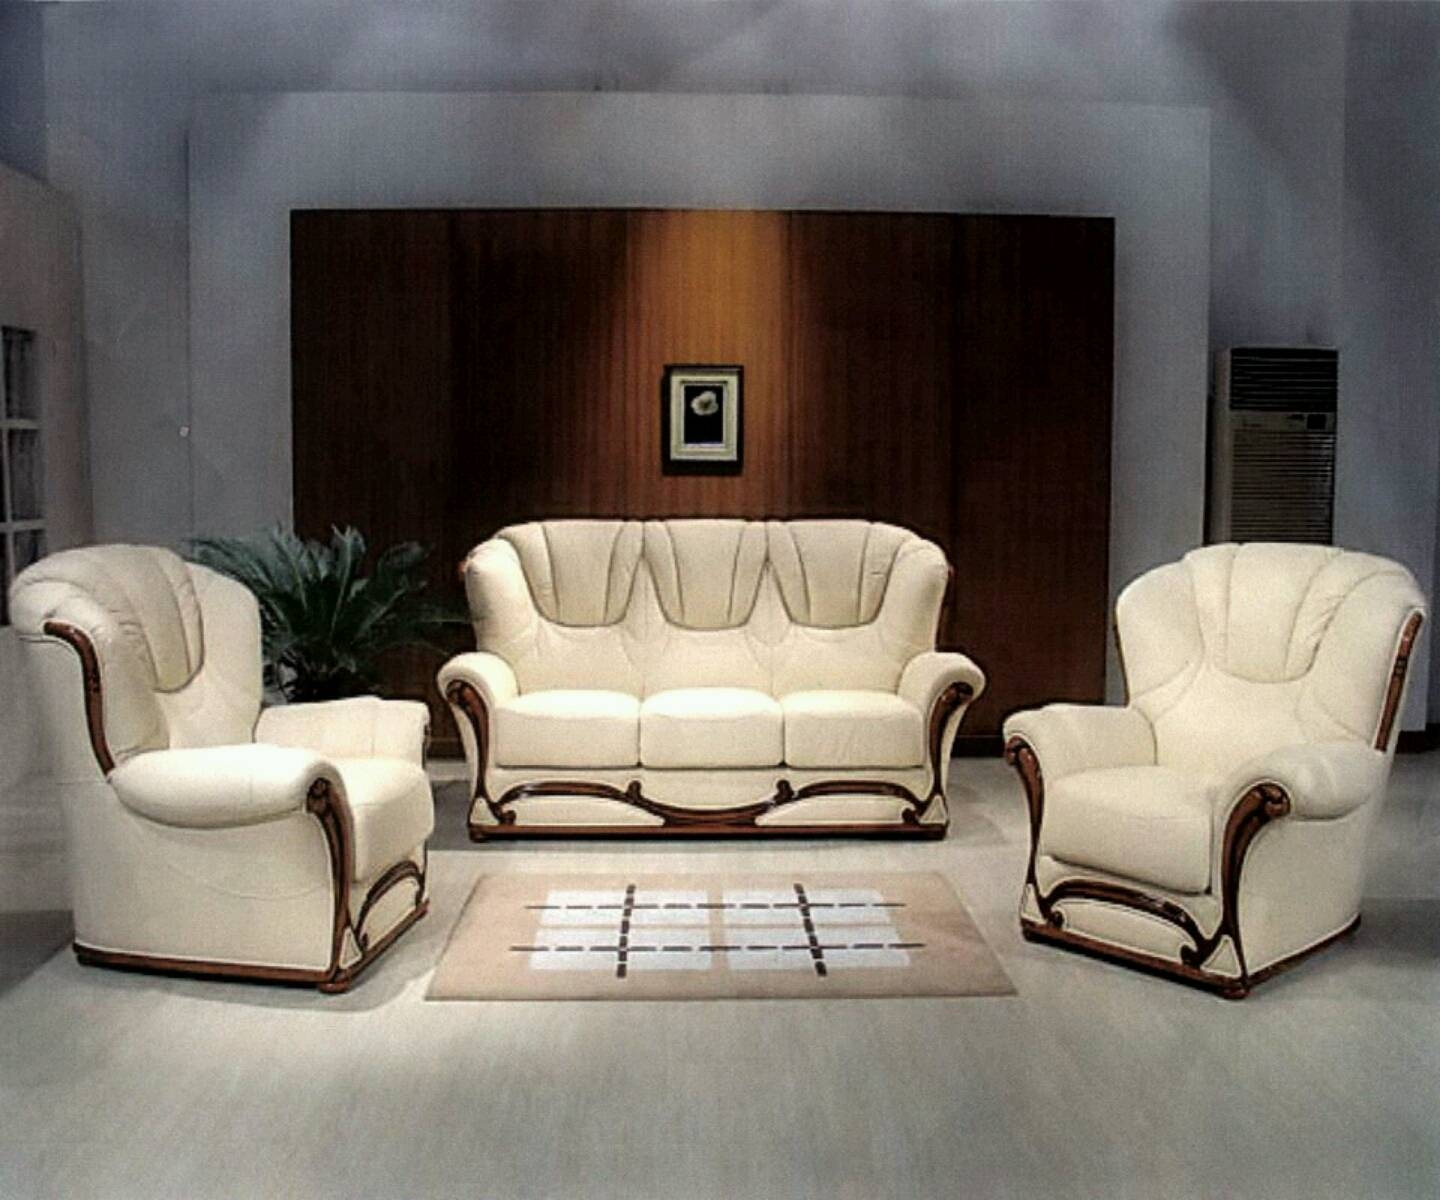 Contemporary Sofa Set Images : Modern Contemporary Sofa Sets – All throughout Contemporary Sofas and Chairs (Image 5 of 15)